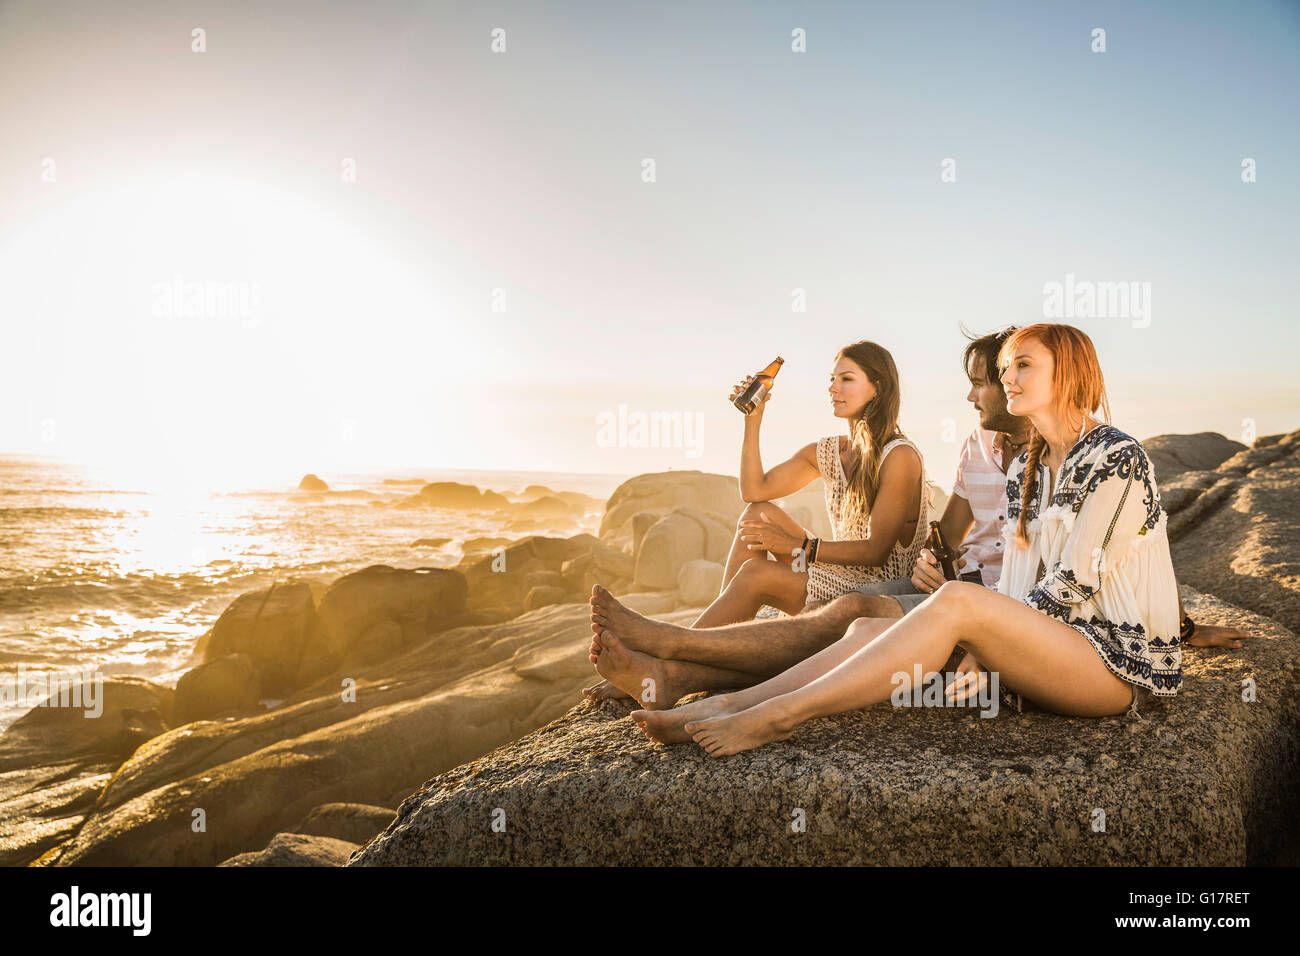 Three mid adults sitting on beach looking out at sunset, Cape Town, South Africa - Stock Image